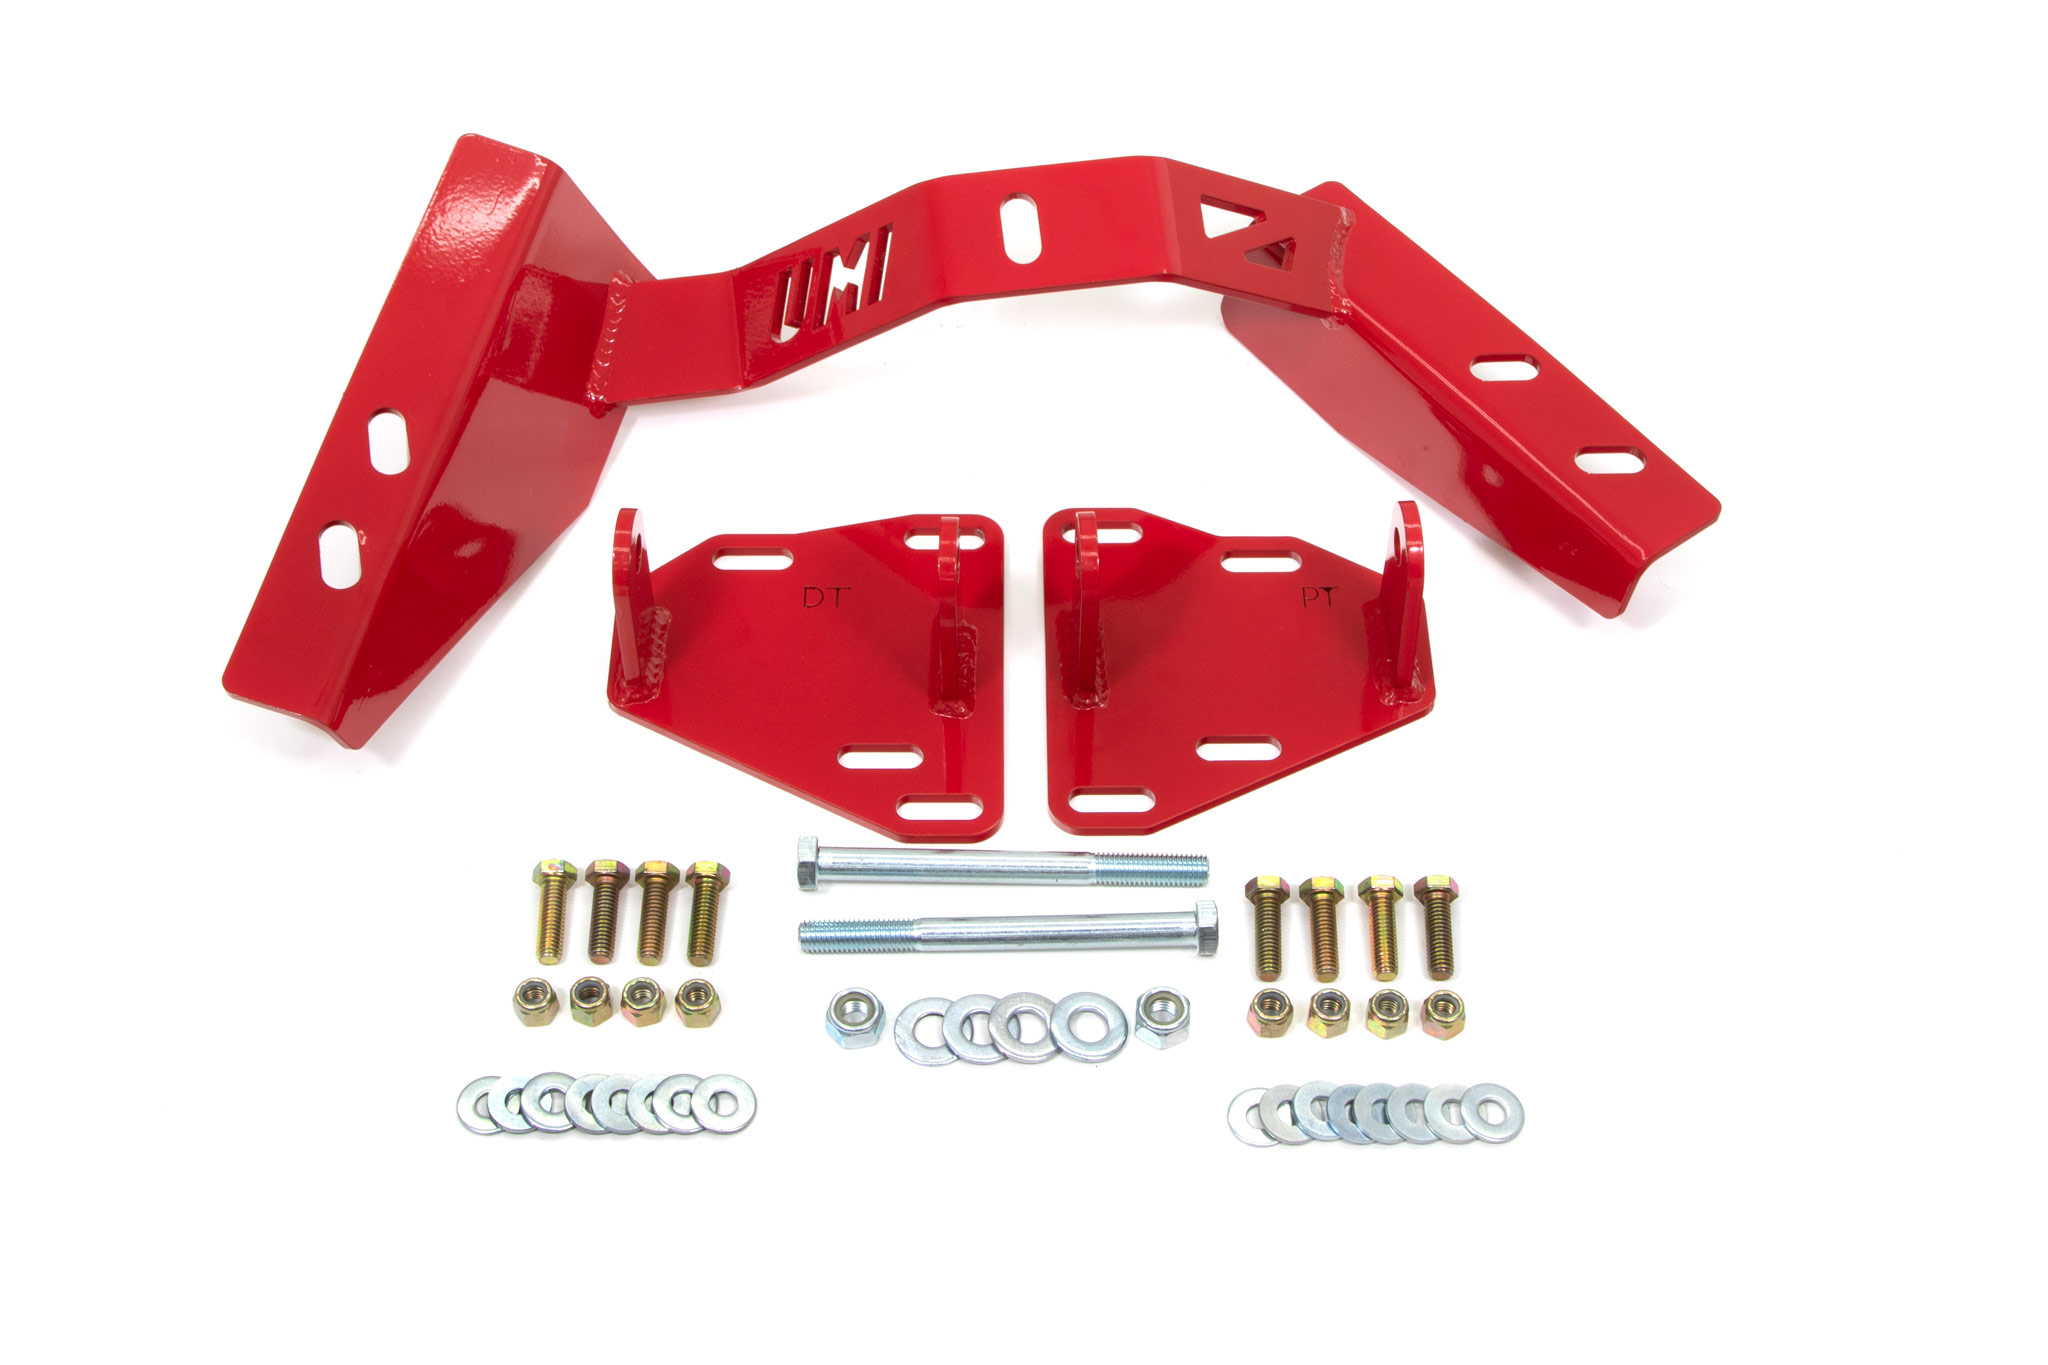 82-92 Fbody UMI Performance LS/T56 Swap Kit